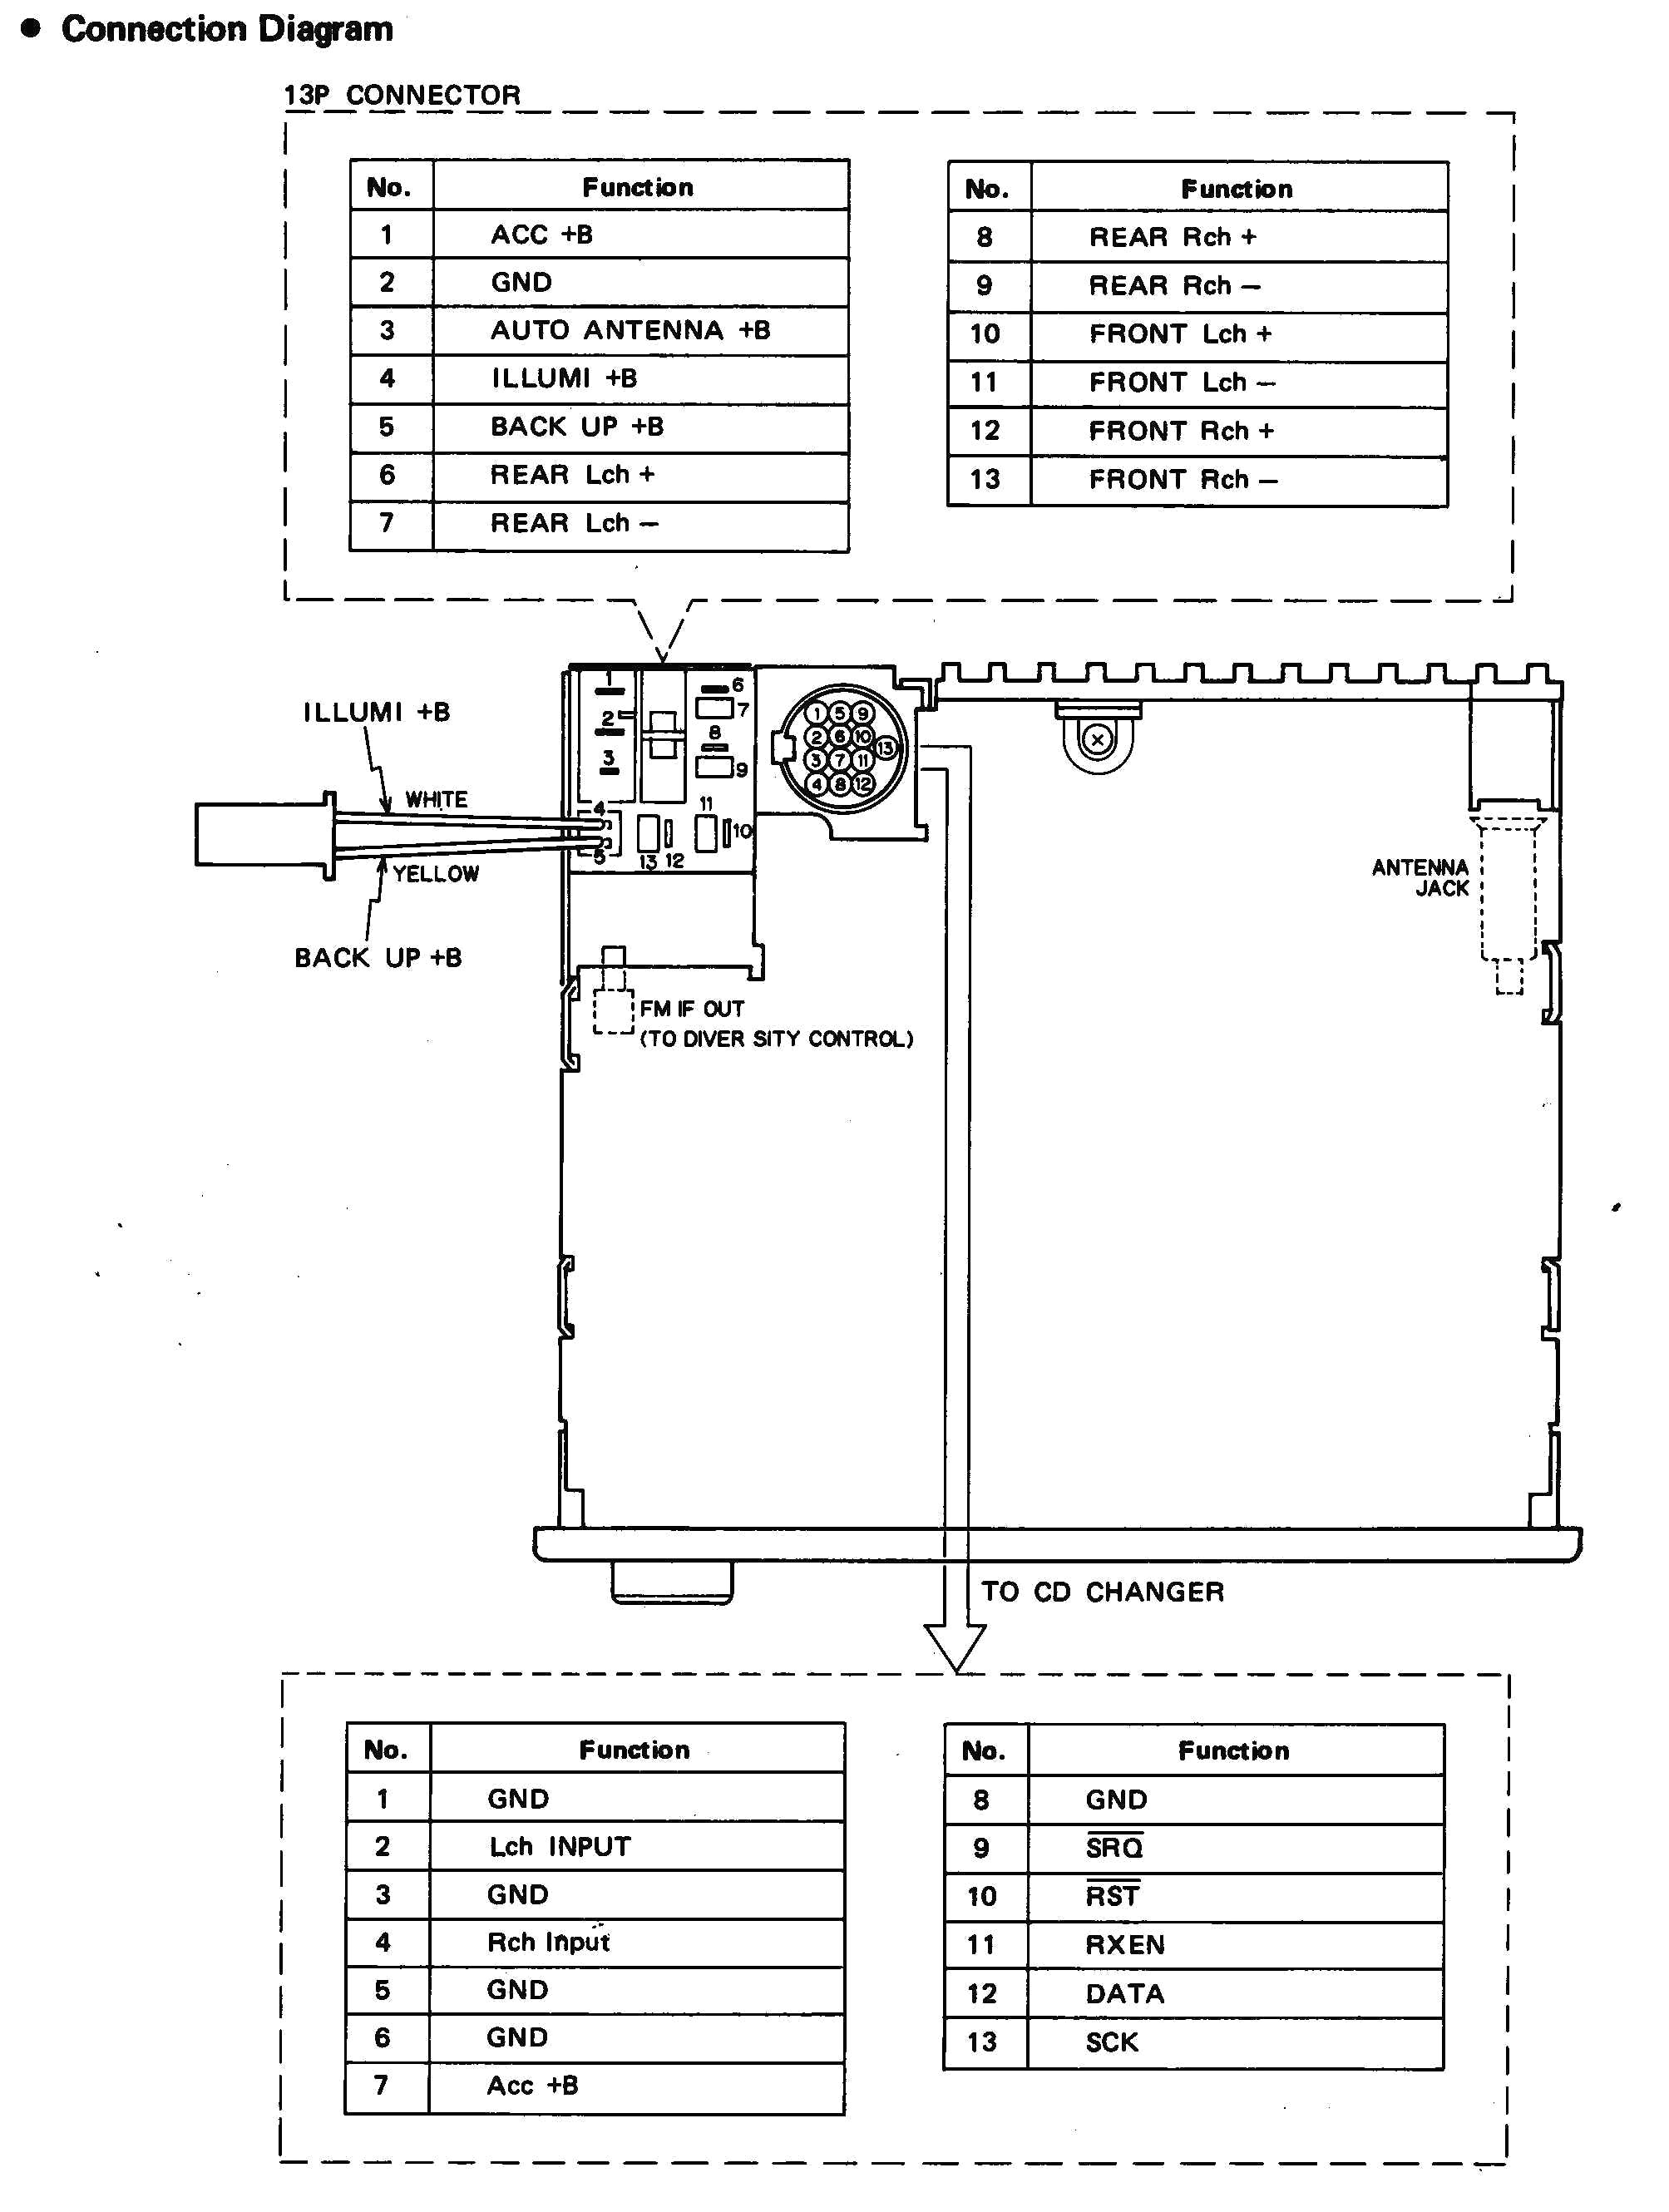 Wiring Diagrams for Car Audio Factory Car Stereo Wiring Diagrams Wiring Diagram Of Wiring Diagrams for Car Audio Car with Detaleted Wiring and Factory Stereo Diagrams Wiring Diagram